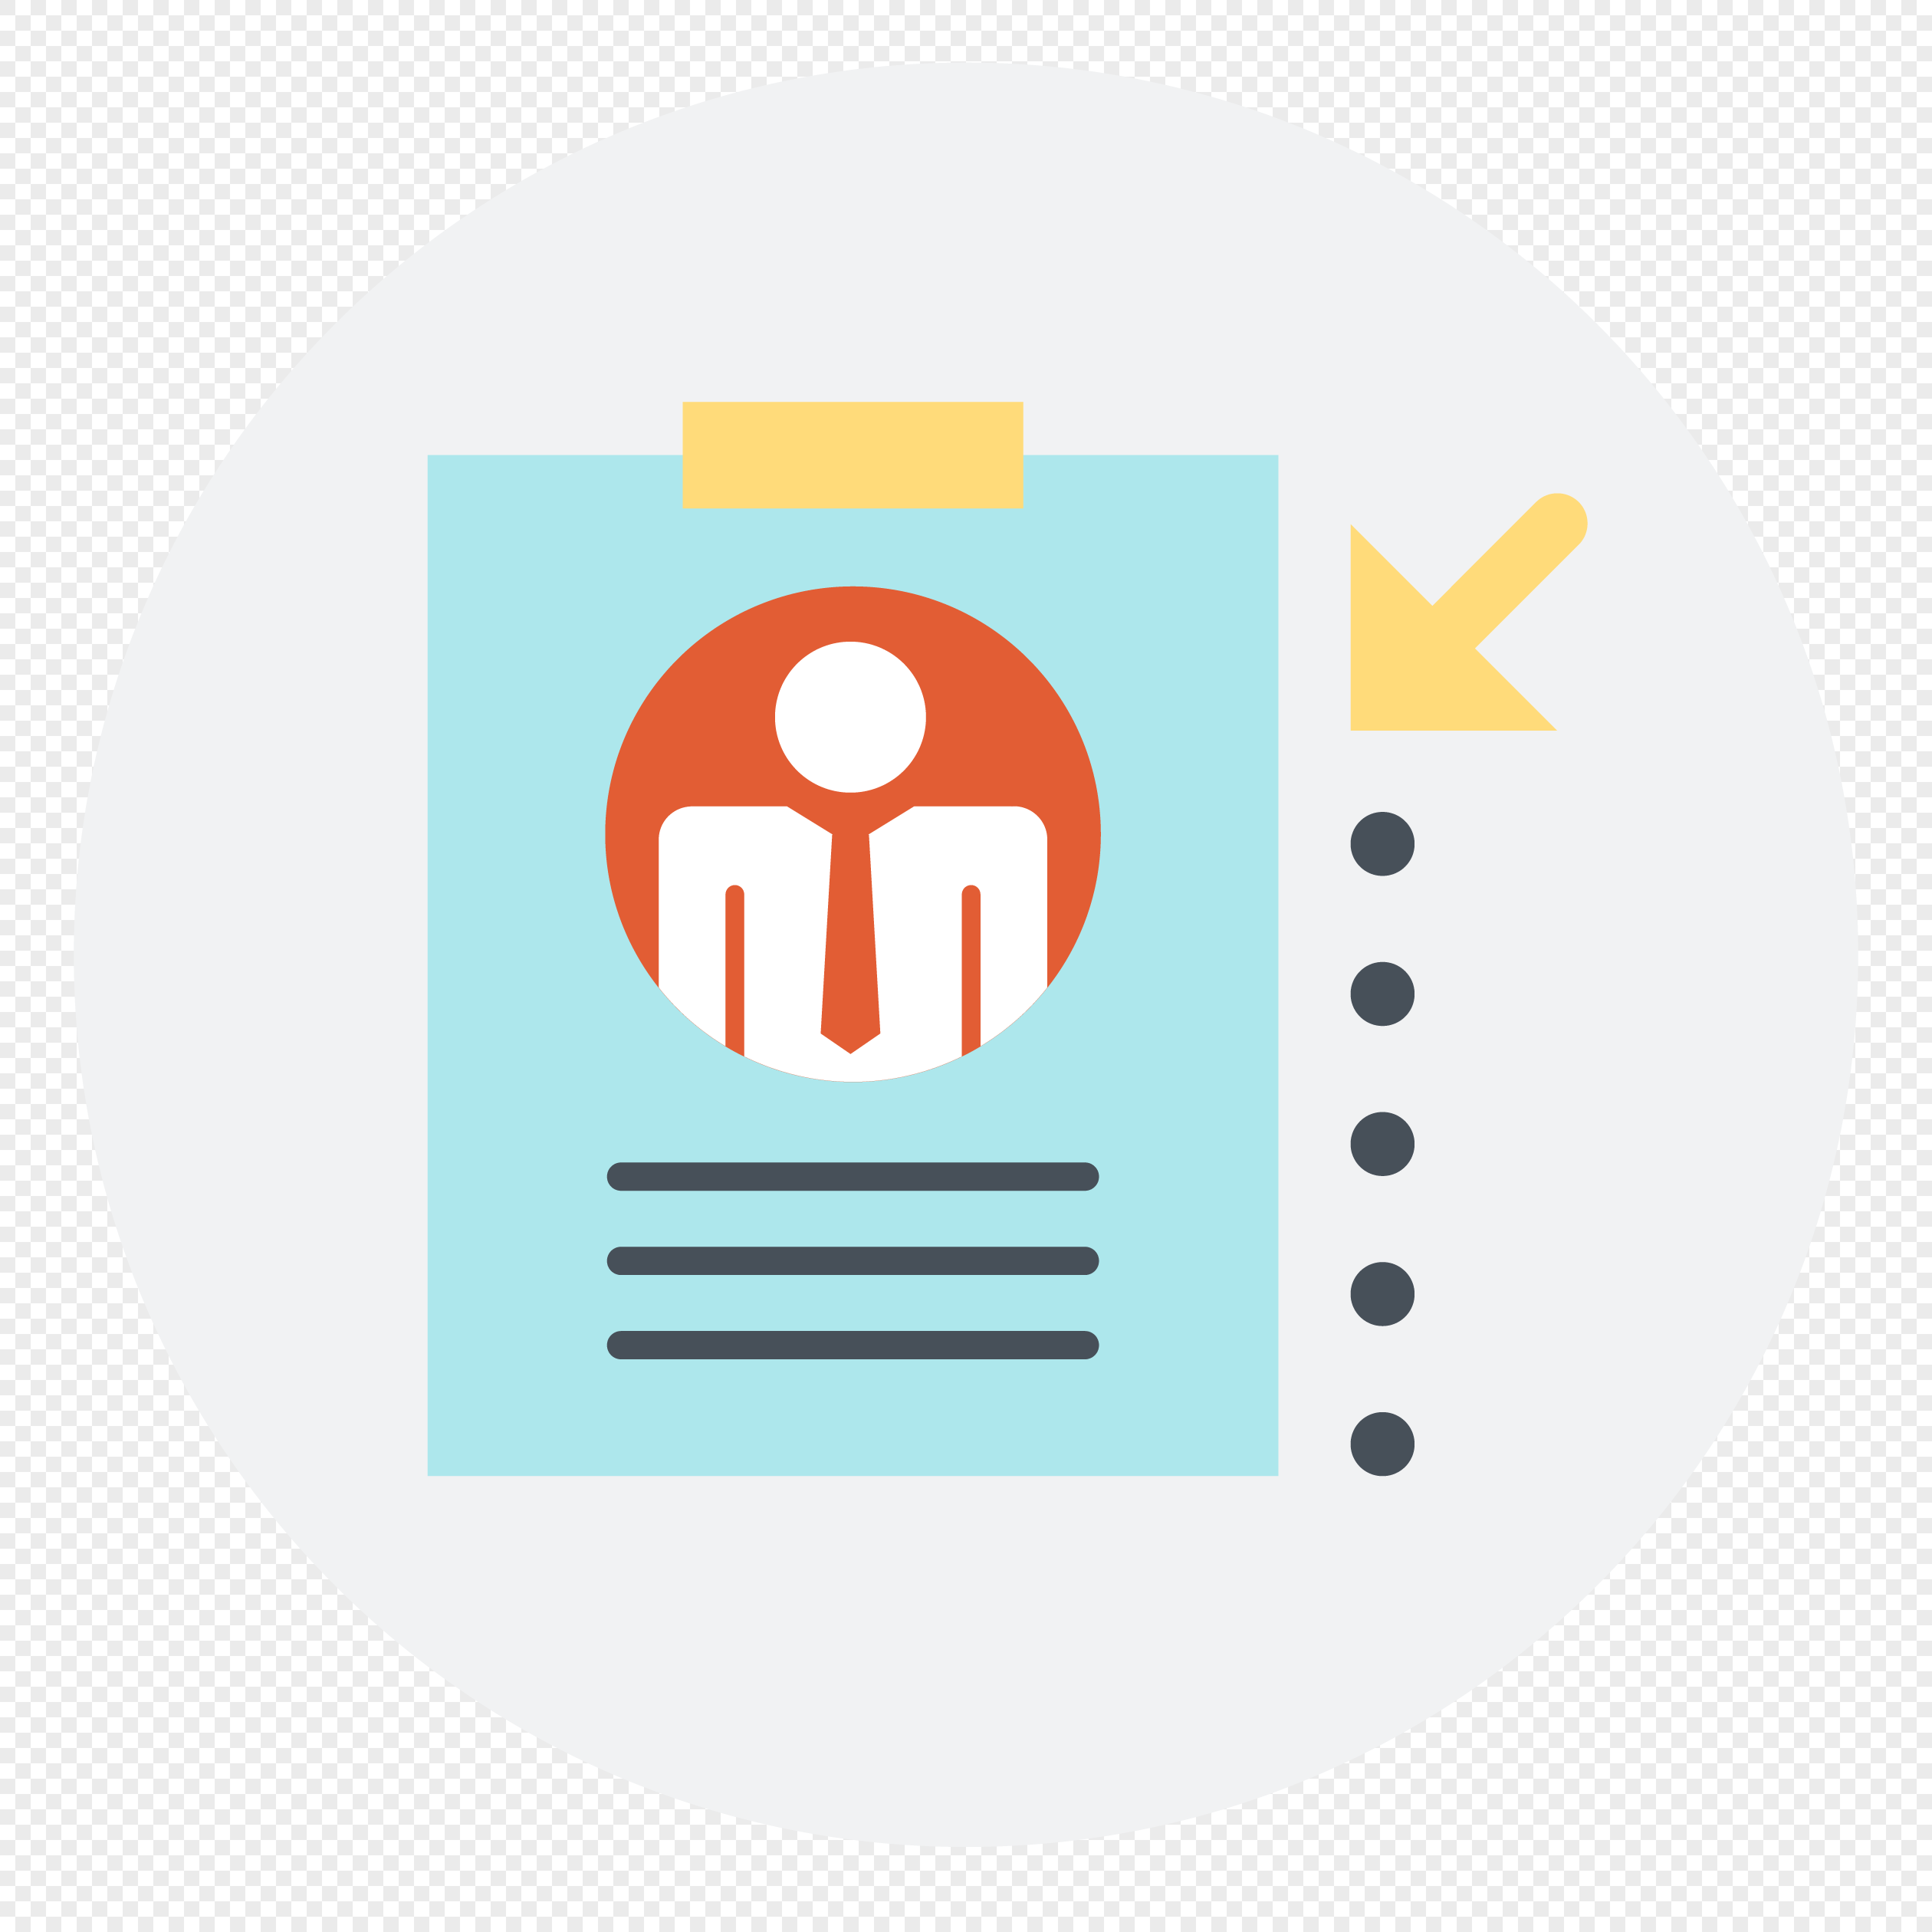 resume icons png image_picture free download 400596625_lovepik